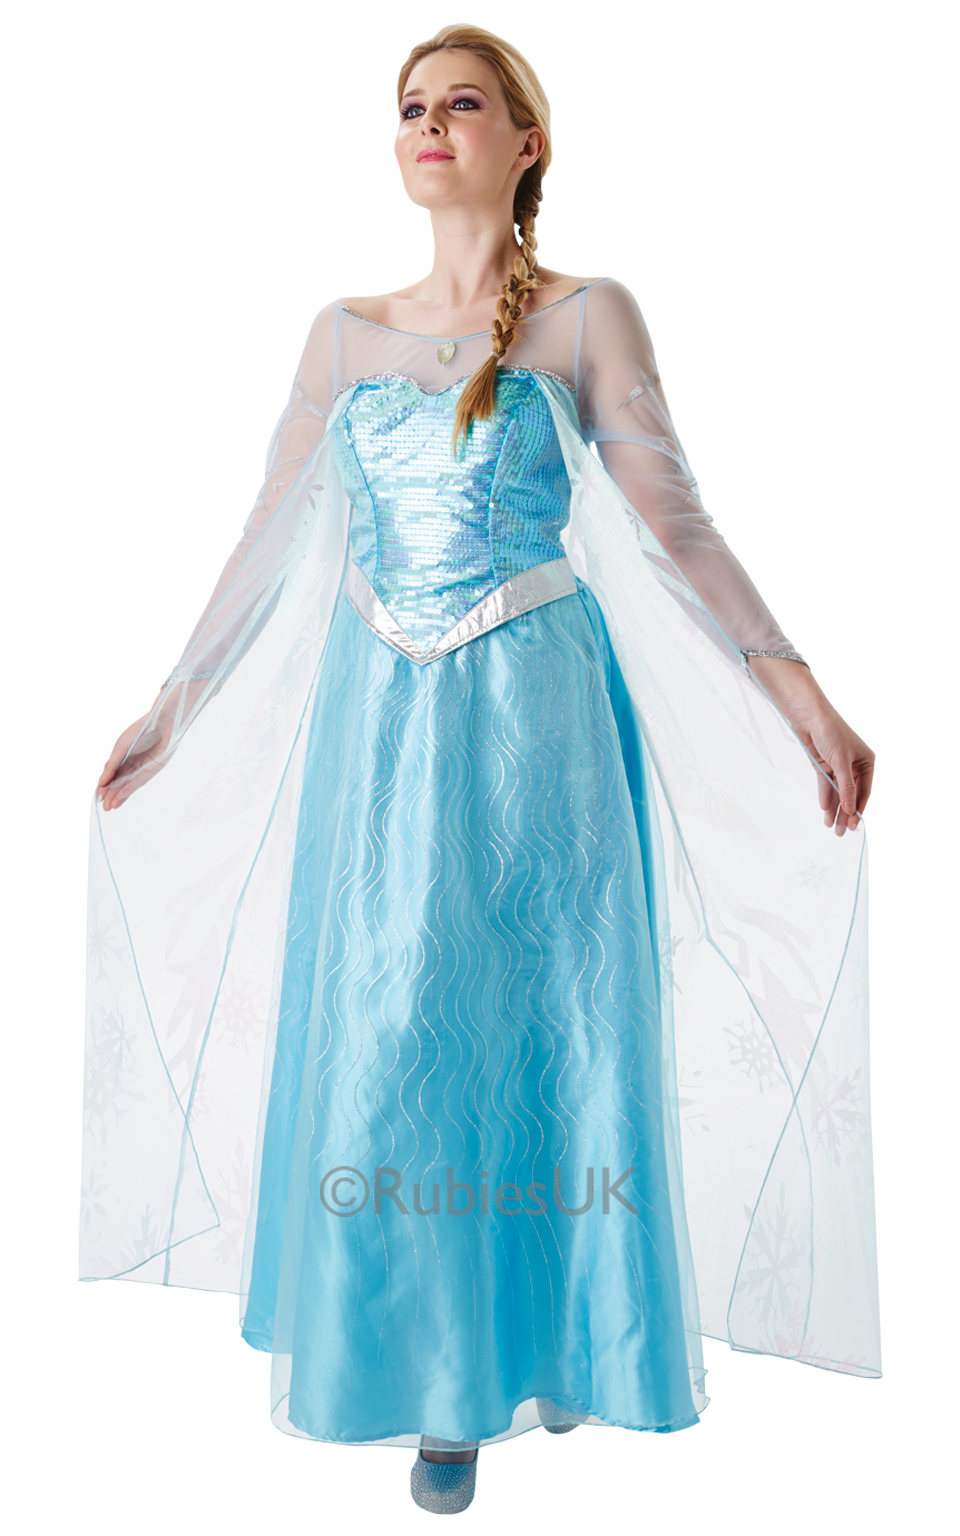 frozen dress up games Online Welcome to the Frozen dress. Frozen is a American 3D computer-animated musical fantasy-comedy movie created by Walt Disney Computer animation Studios and launched by Walt Disney Pictures.